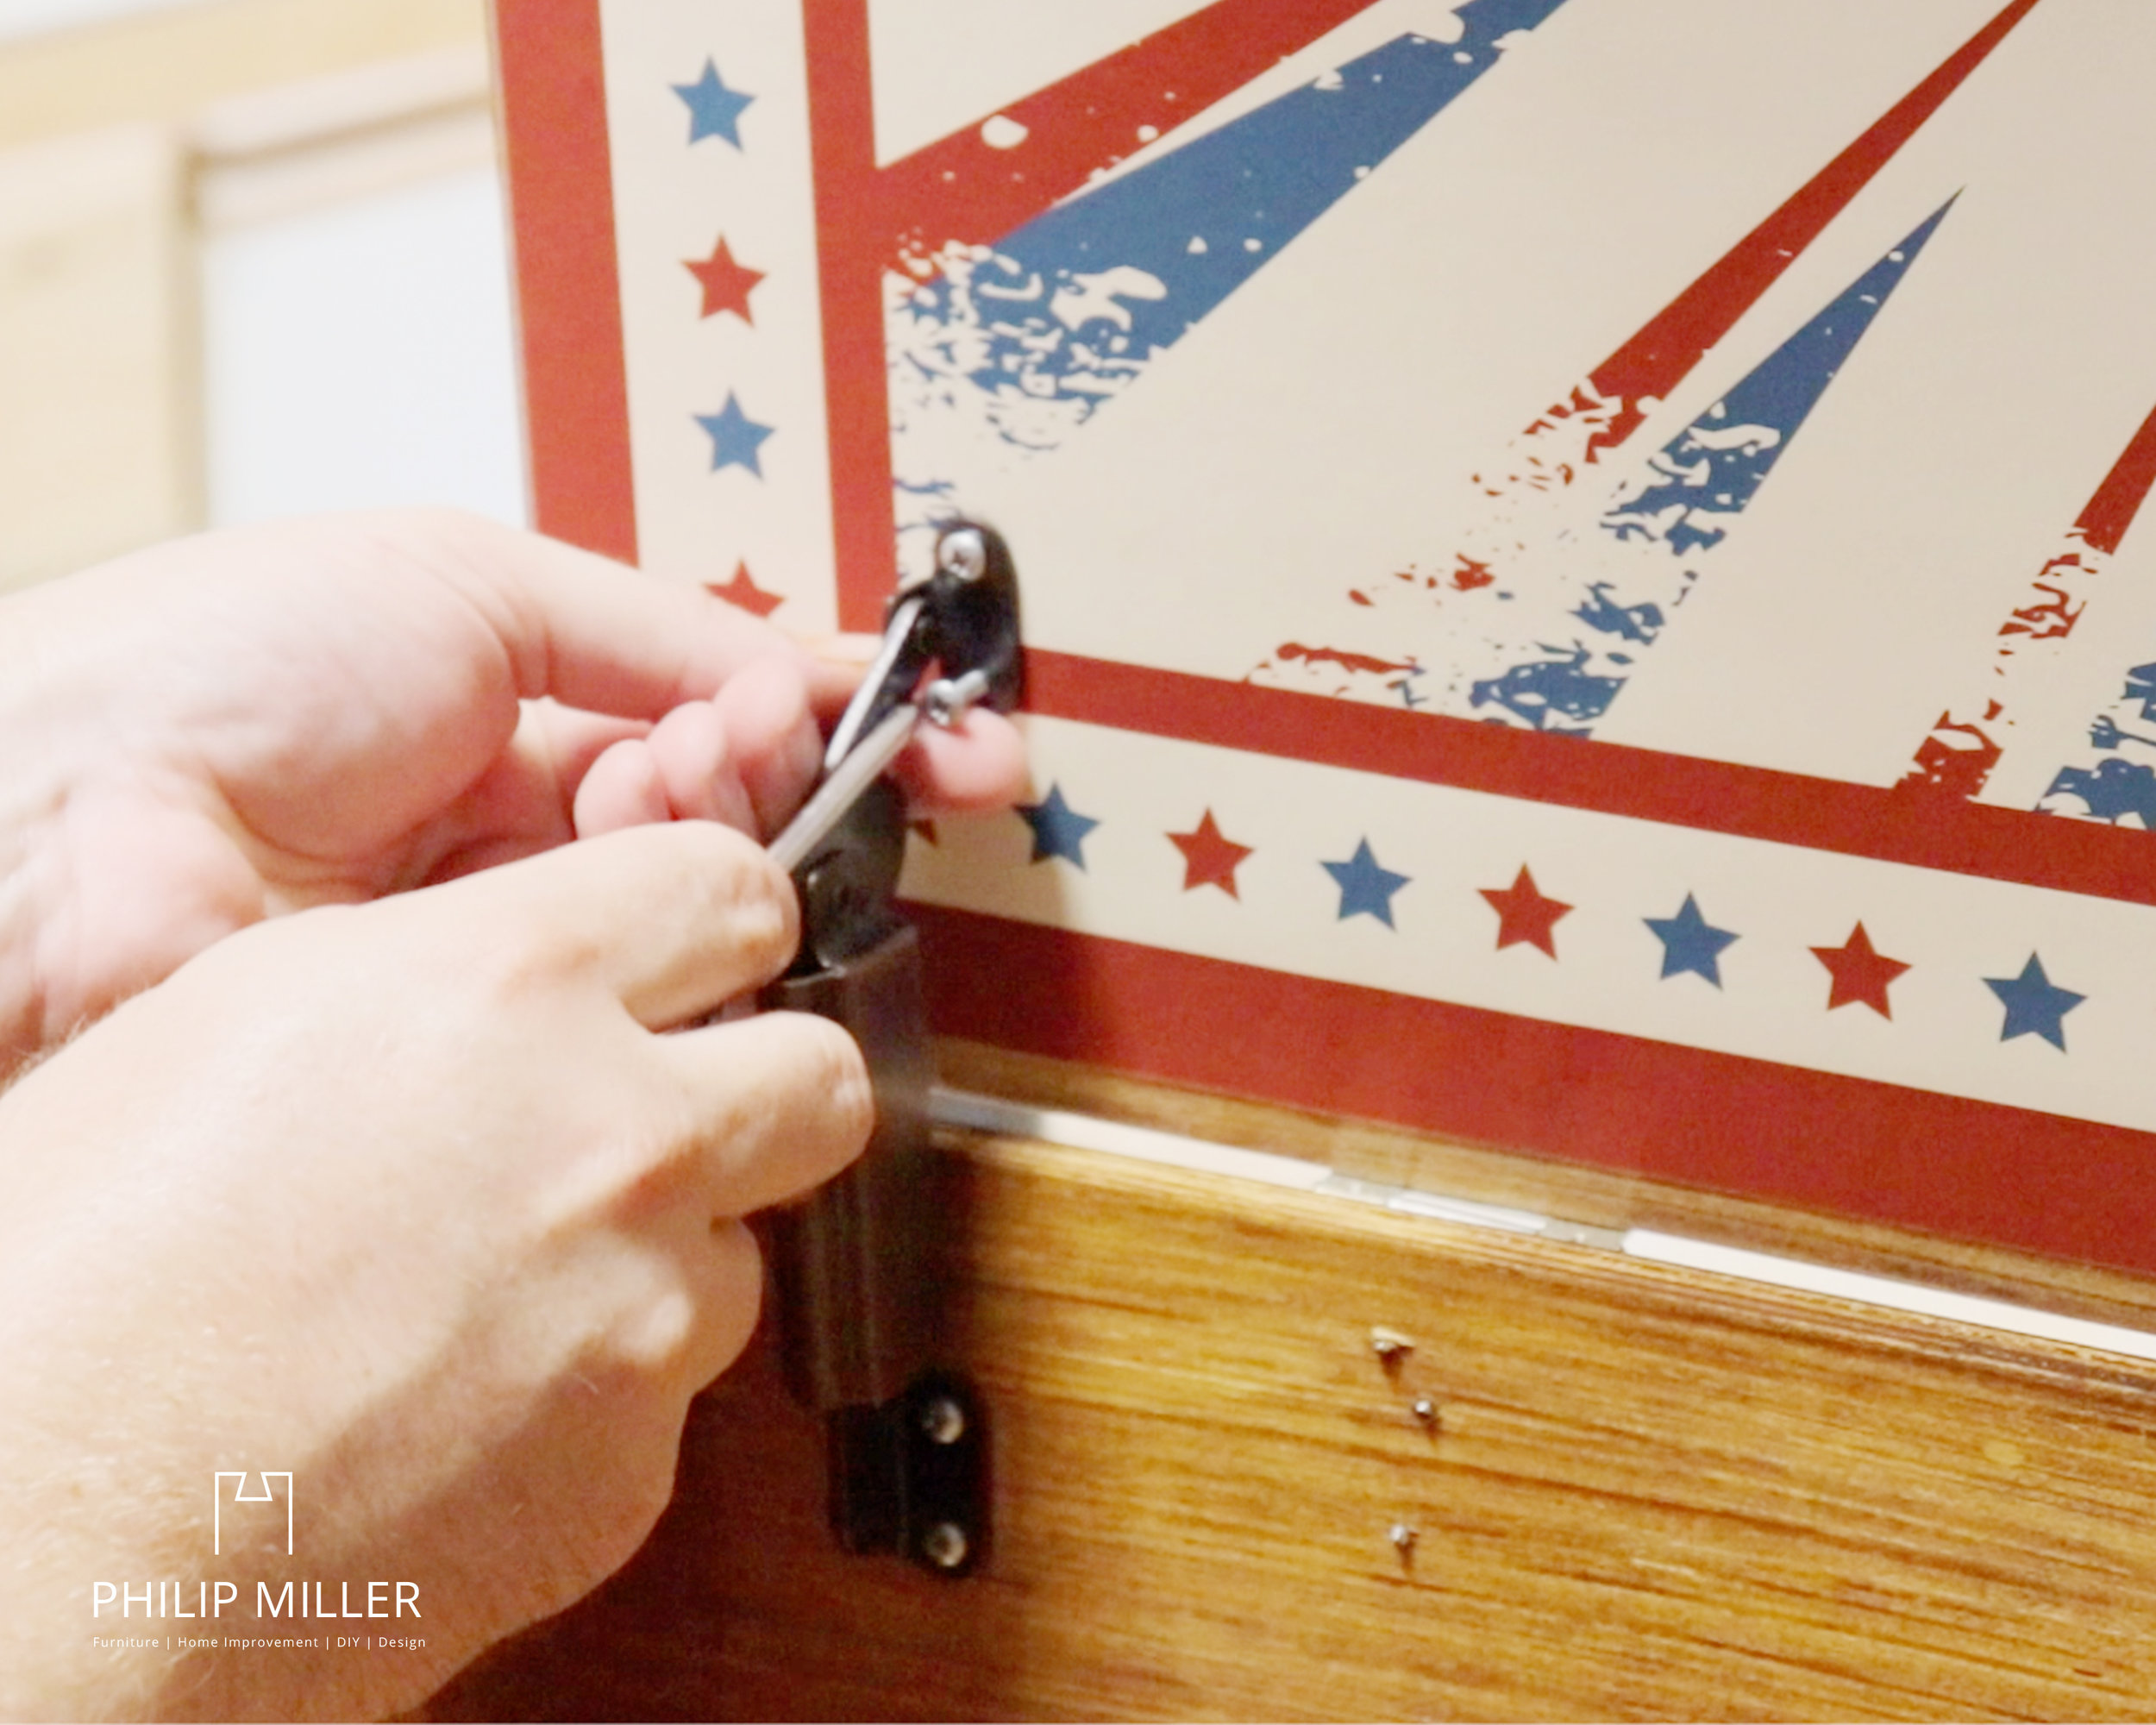 installing a toy box hinge for the lid of a ring toss game